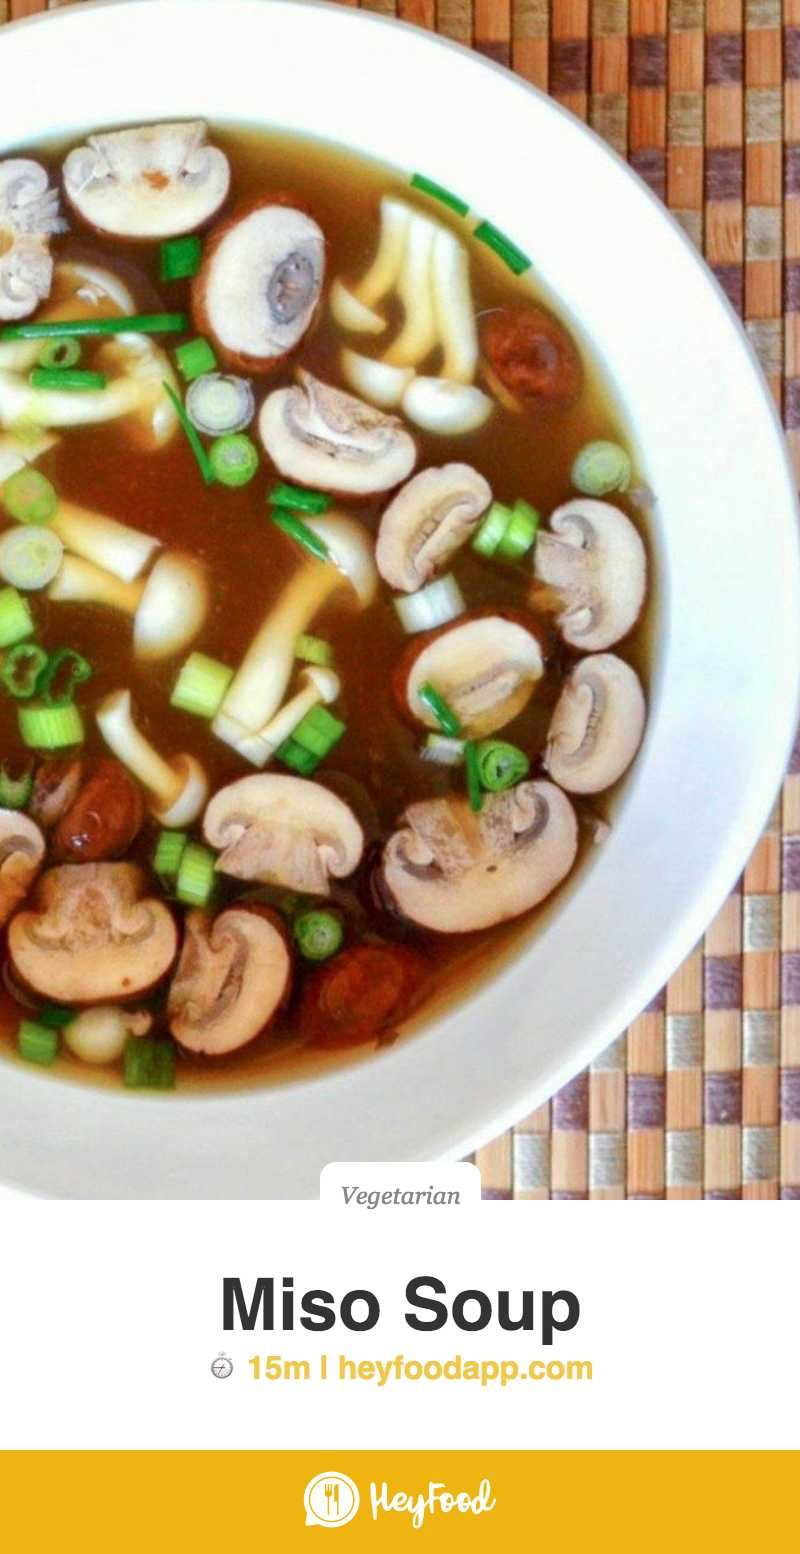 Miso Soup  Miso Soup is the original health food, it's been nourishing the Japanese for centuries, and you can make it yourself in minutes.    Recipe credit: The View From the Great Island